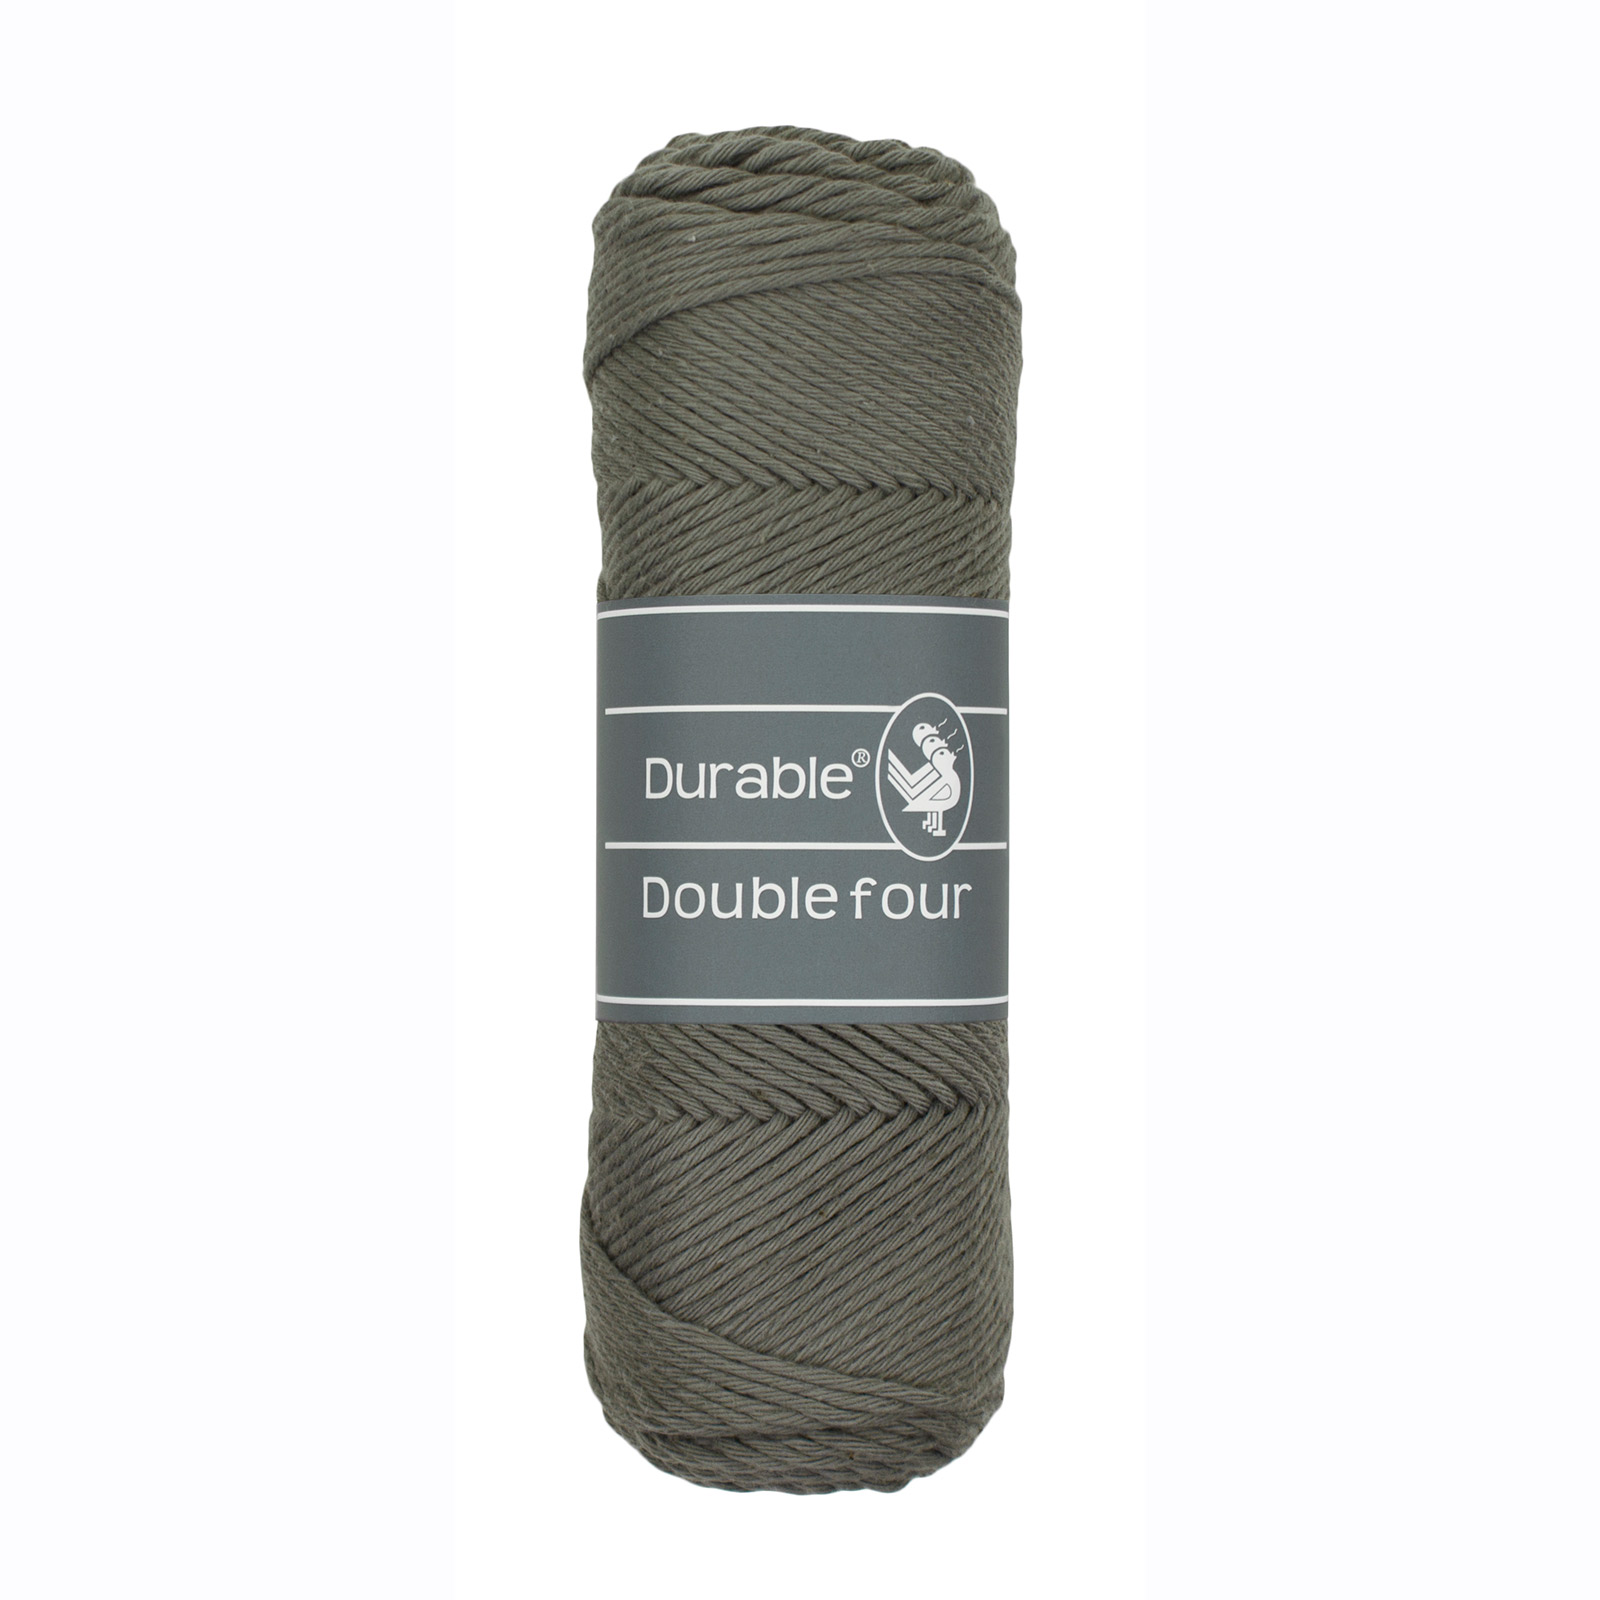 Durable Double Four – Charcoal